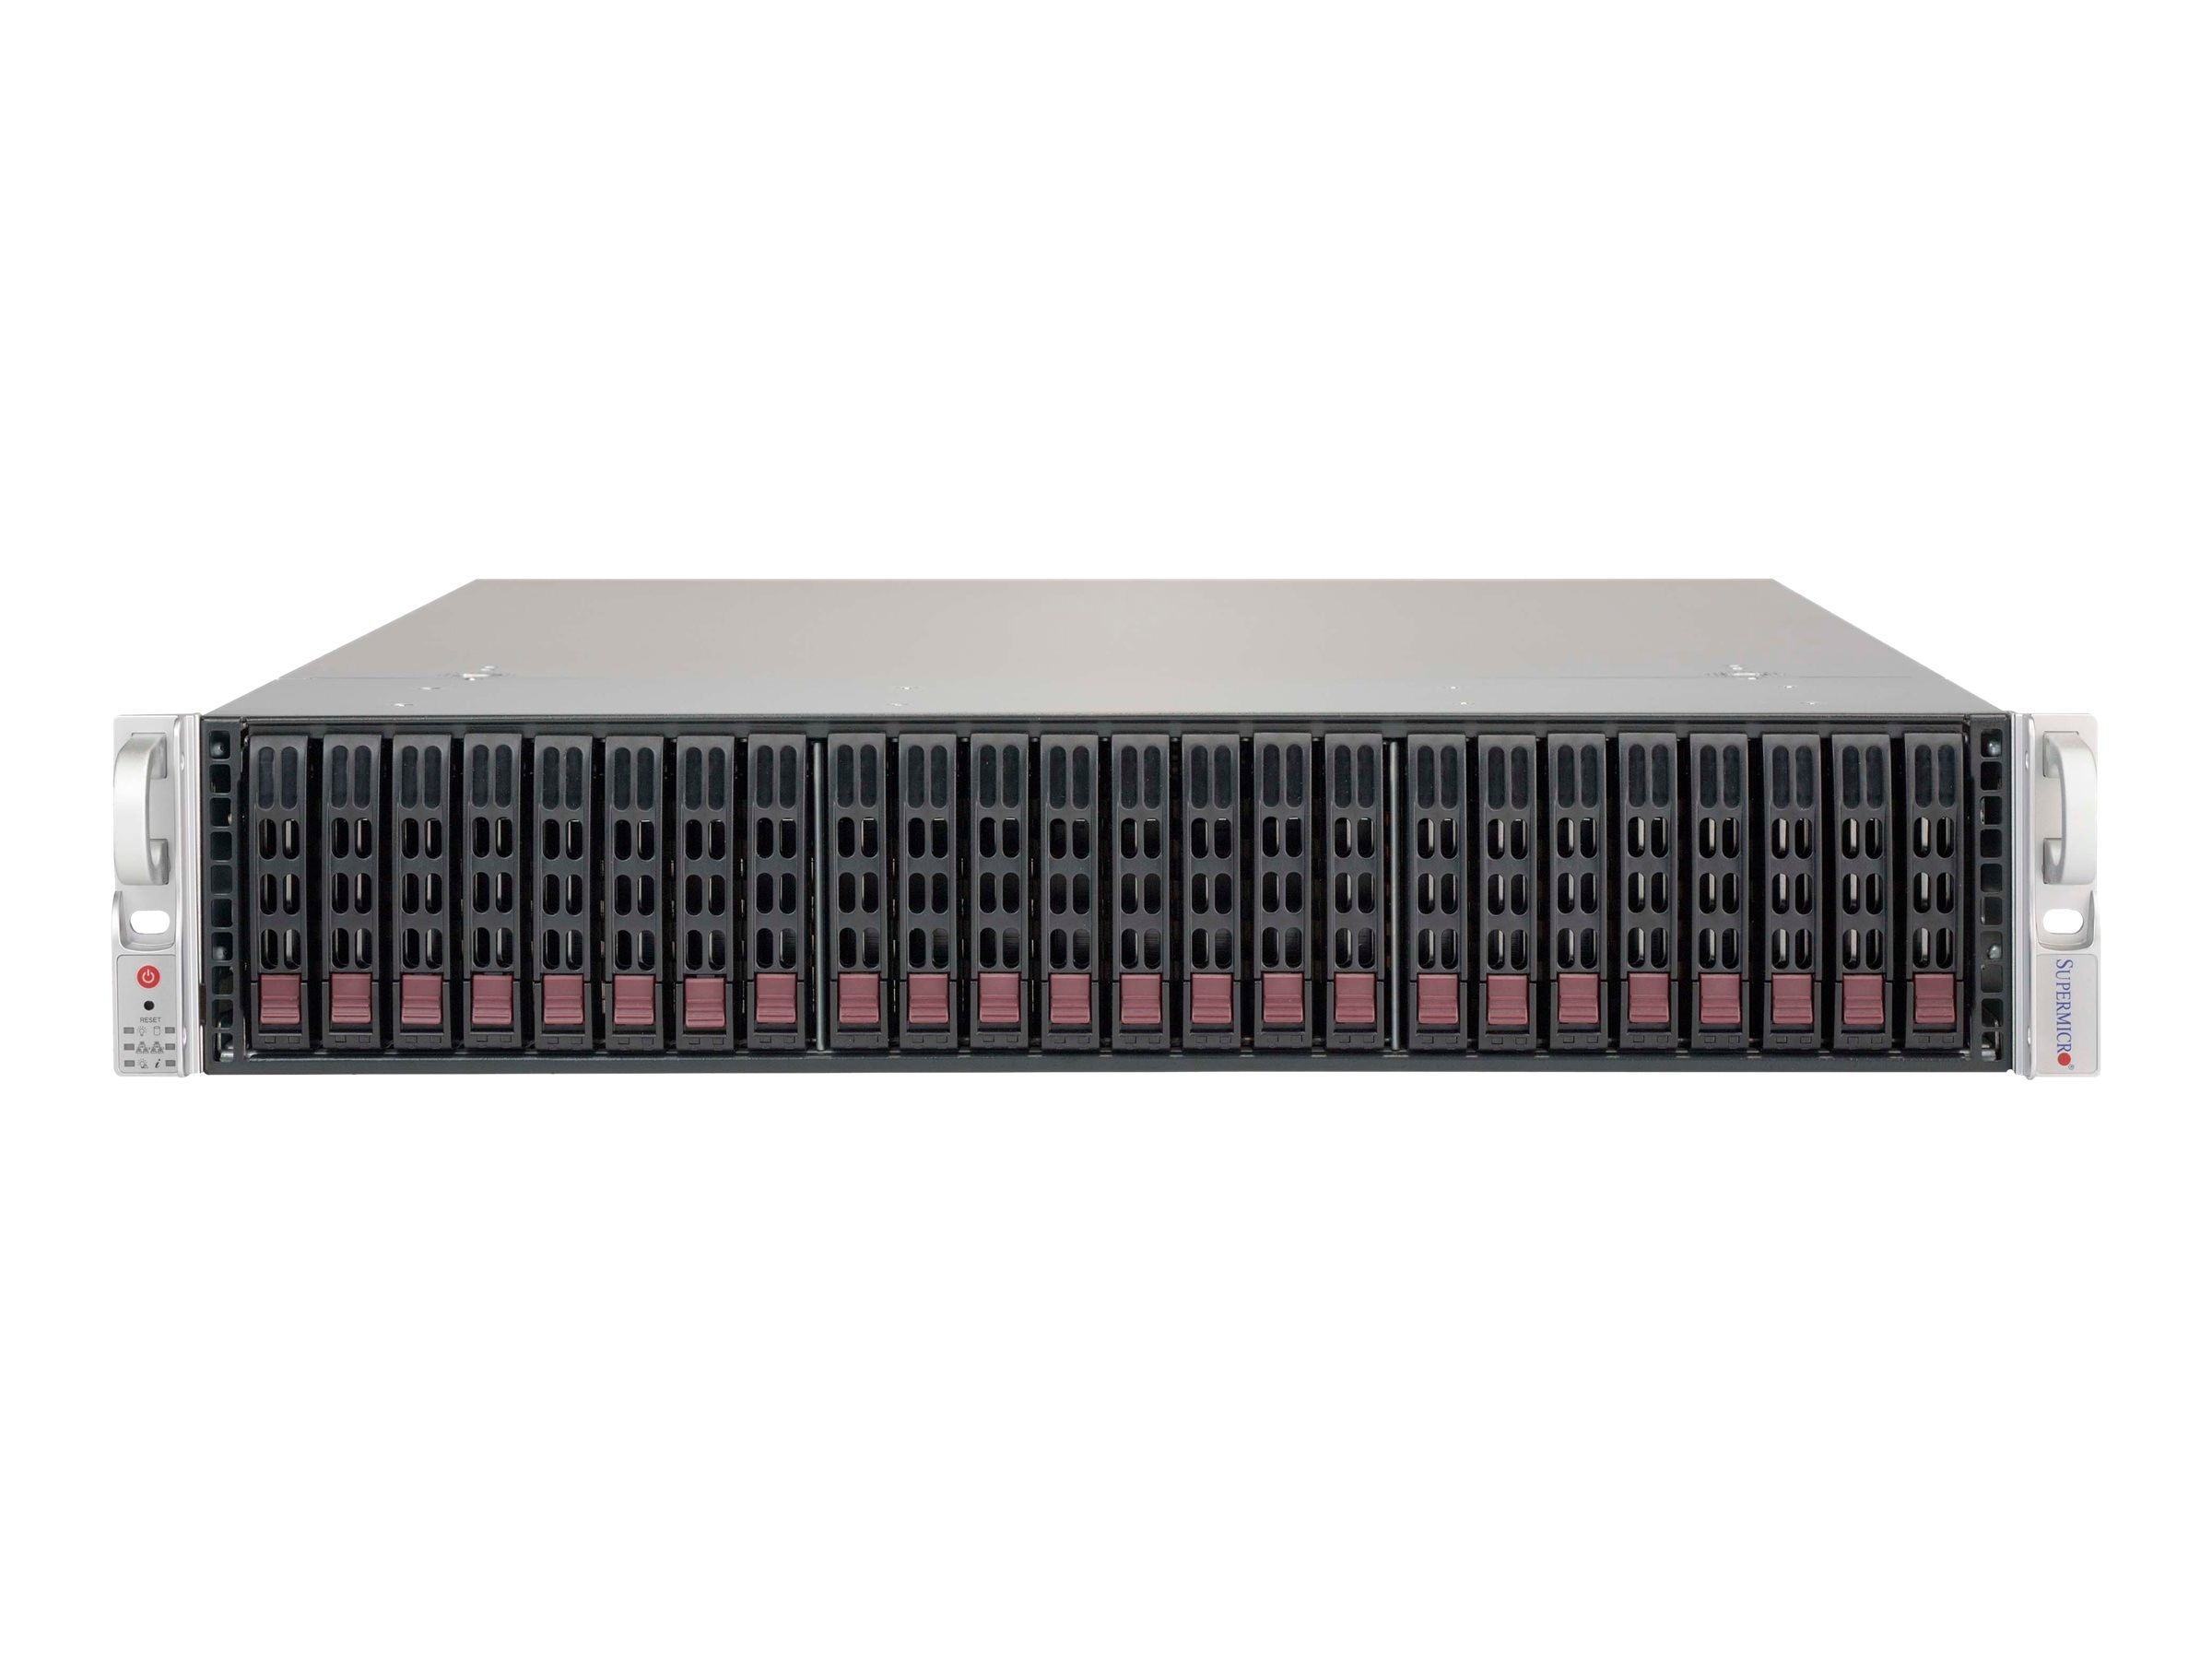 Supermicro Chassis, SuperChassis 216BE2C-R741JBOD 2U RM 24x2.5 HS Bays 2x740W, Black, CSE-216BE2C-R741JBOD, 31862990, Cases - Systems/Servers